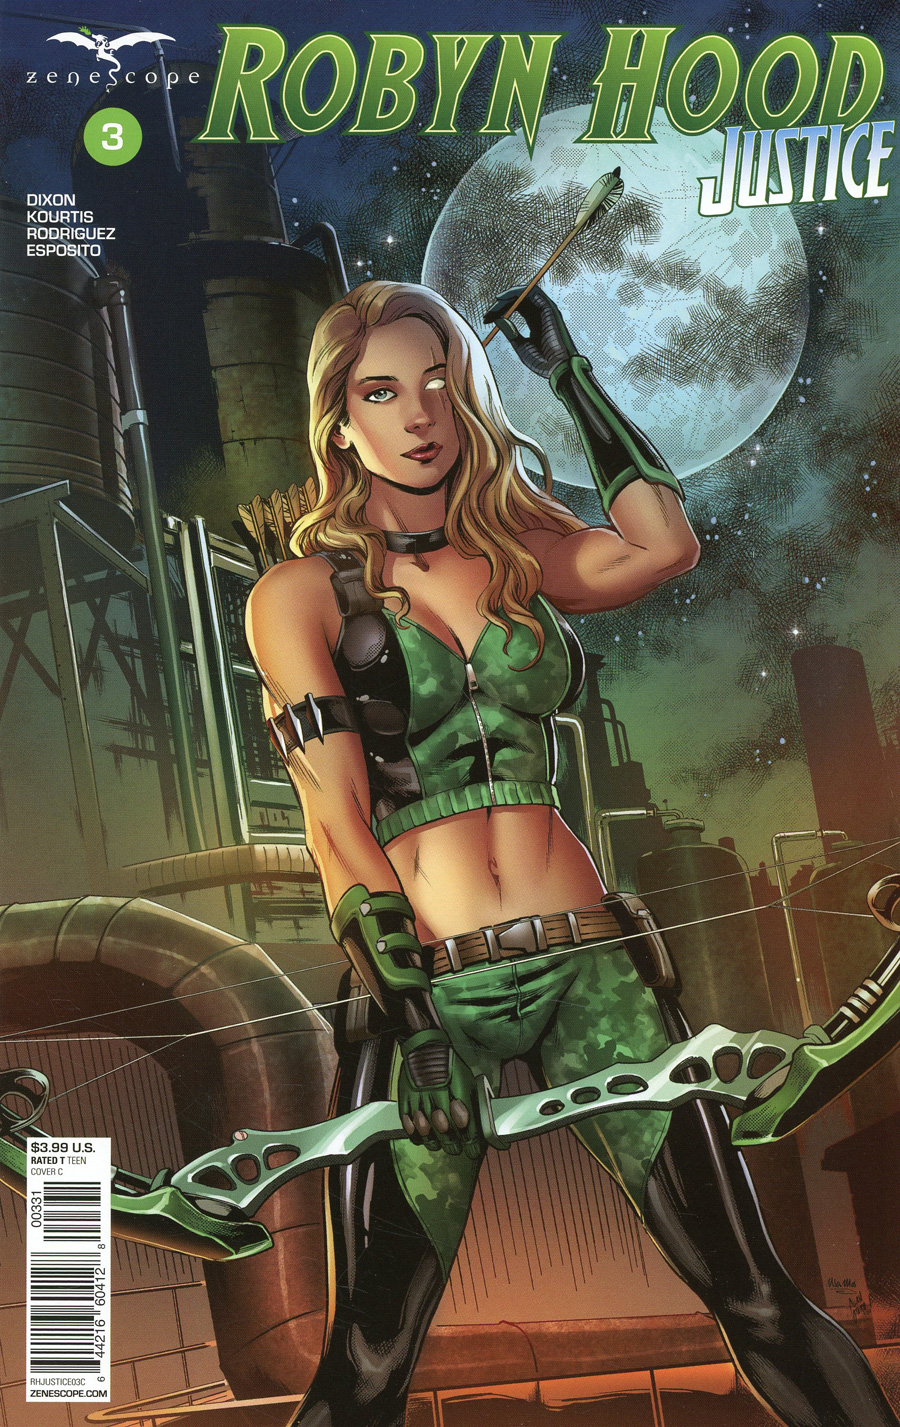 Grimm Fairy Tales Presents Robyn Hood Justice #3 Cover C Allan Otero